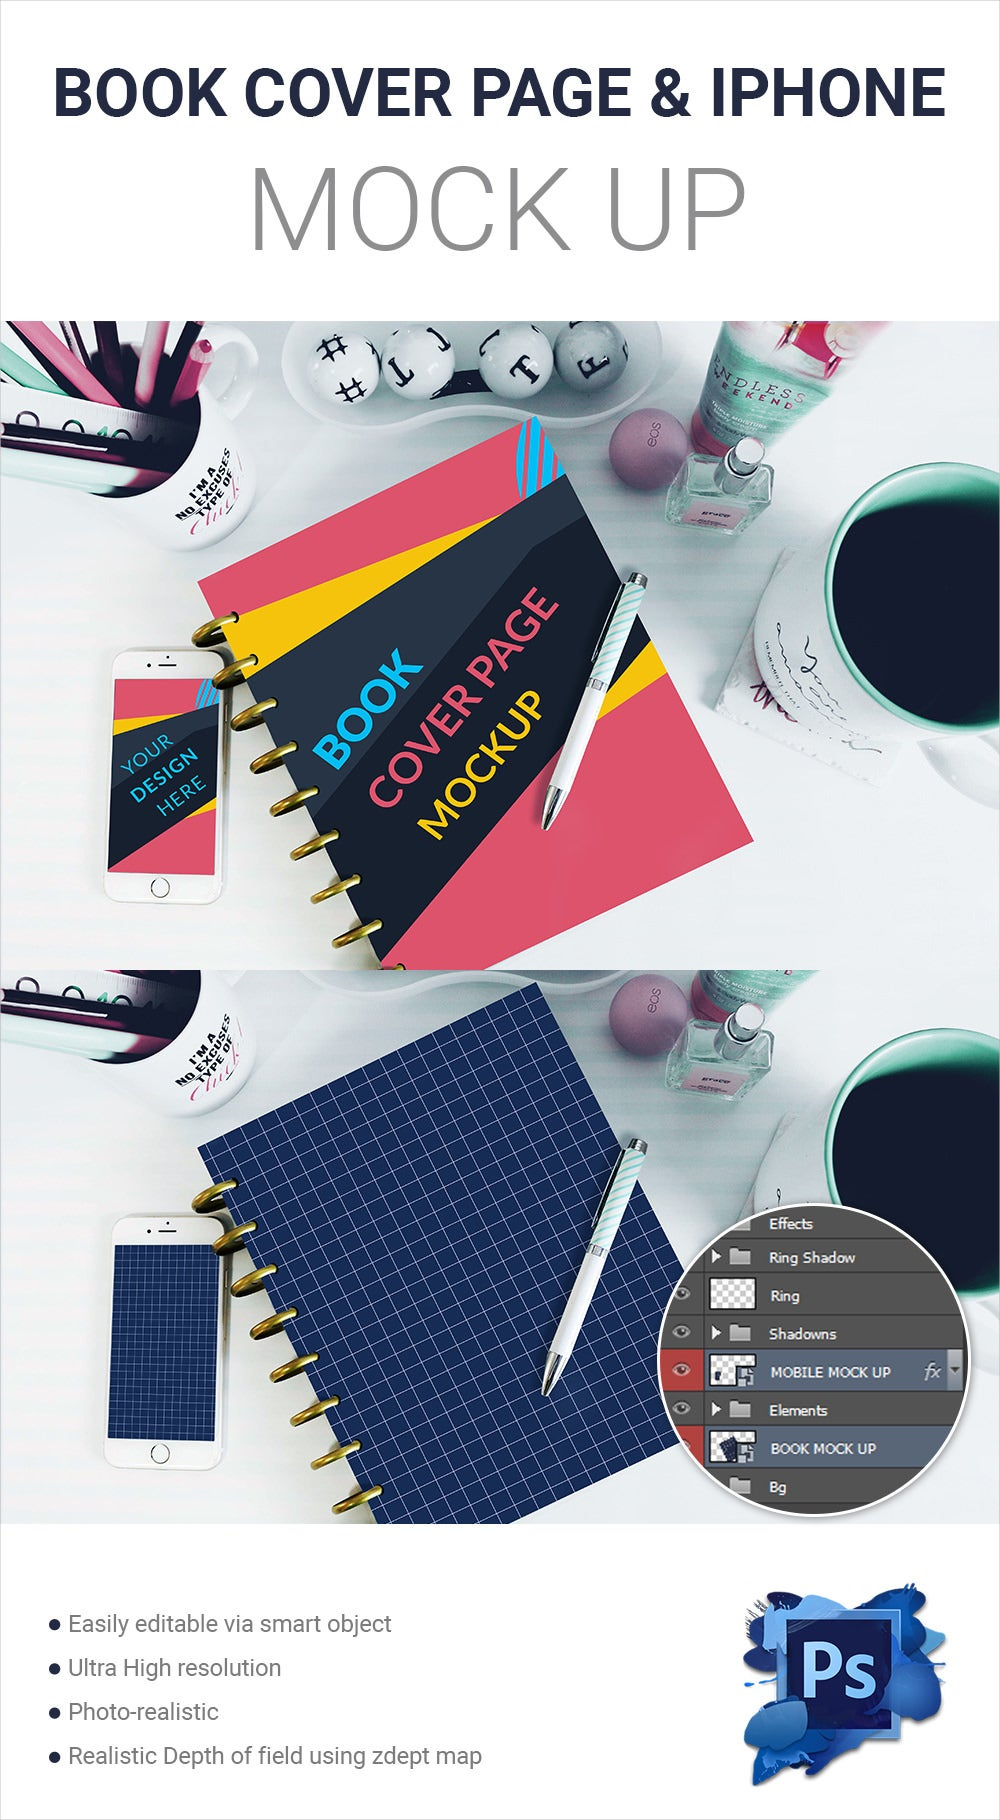 15 ebook cover designs premium templates book cover page iphone mockup